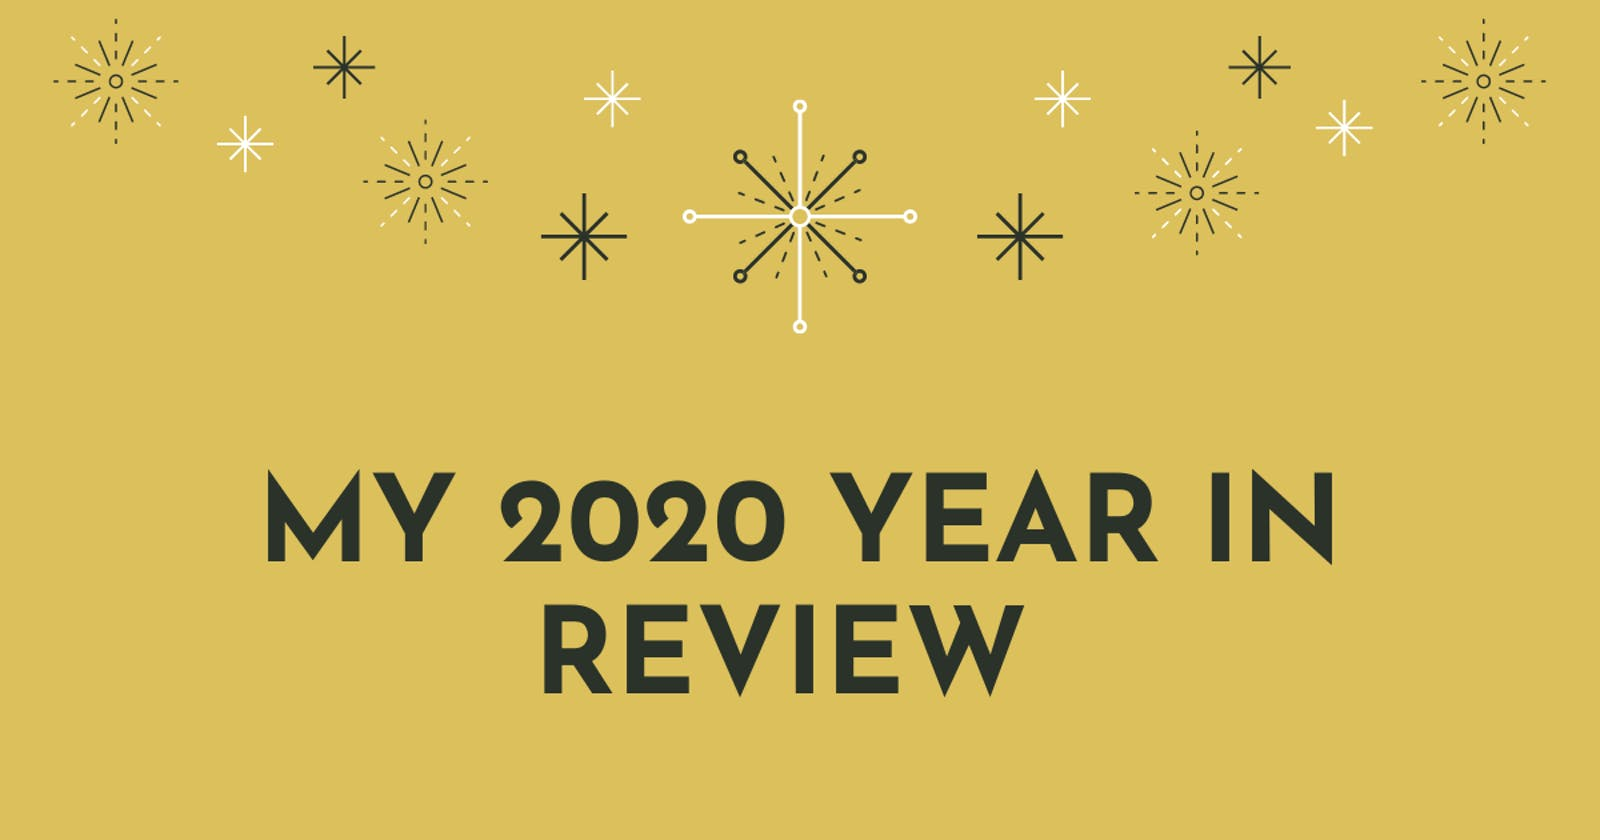 My 2020 Year in Review